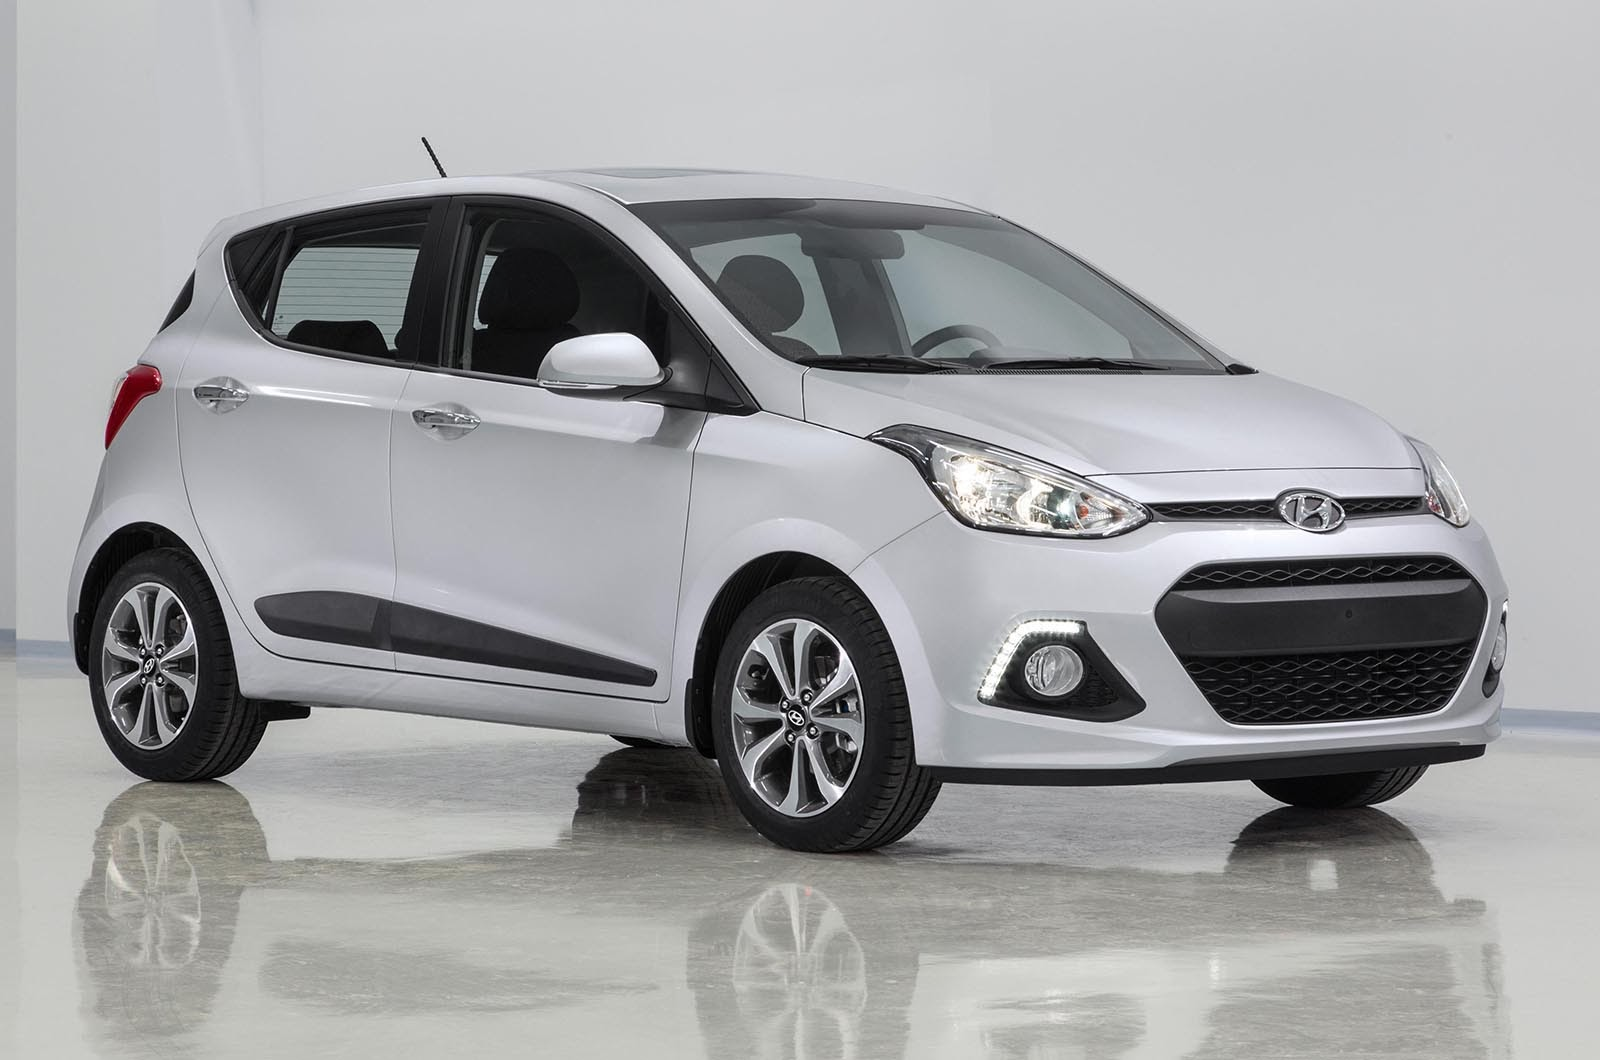 2014 hyundai i10 review specs and price auto review 2014. Black Bedroom Furniture Sets. Home Design Ideas